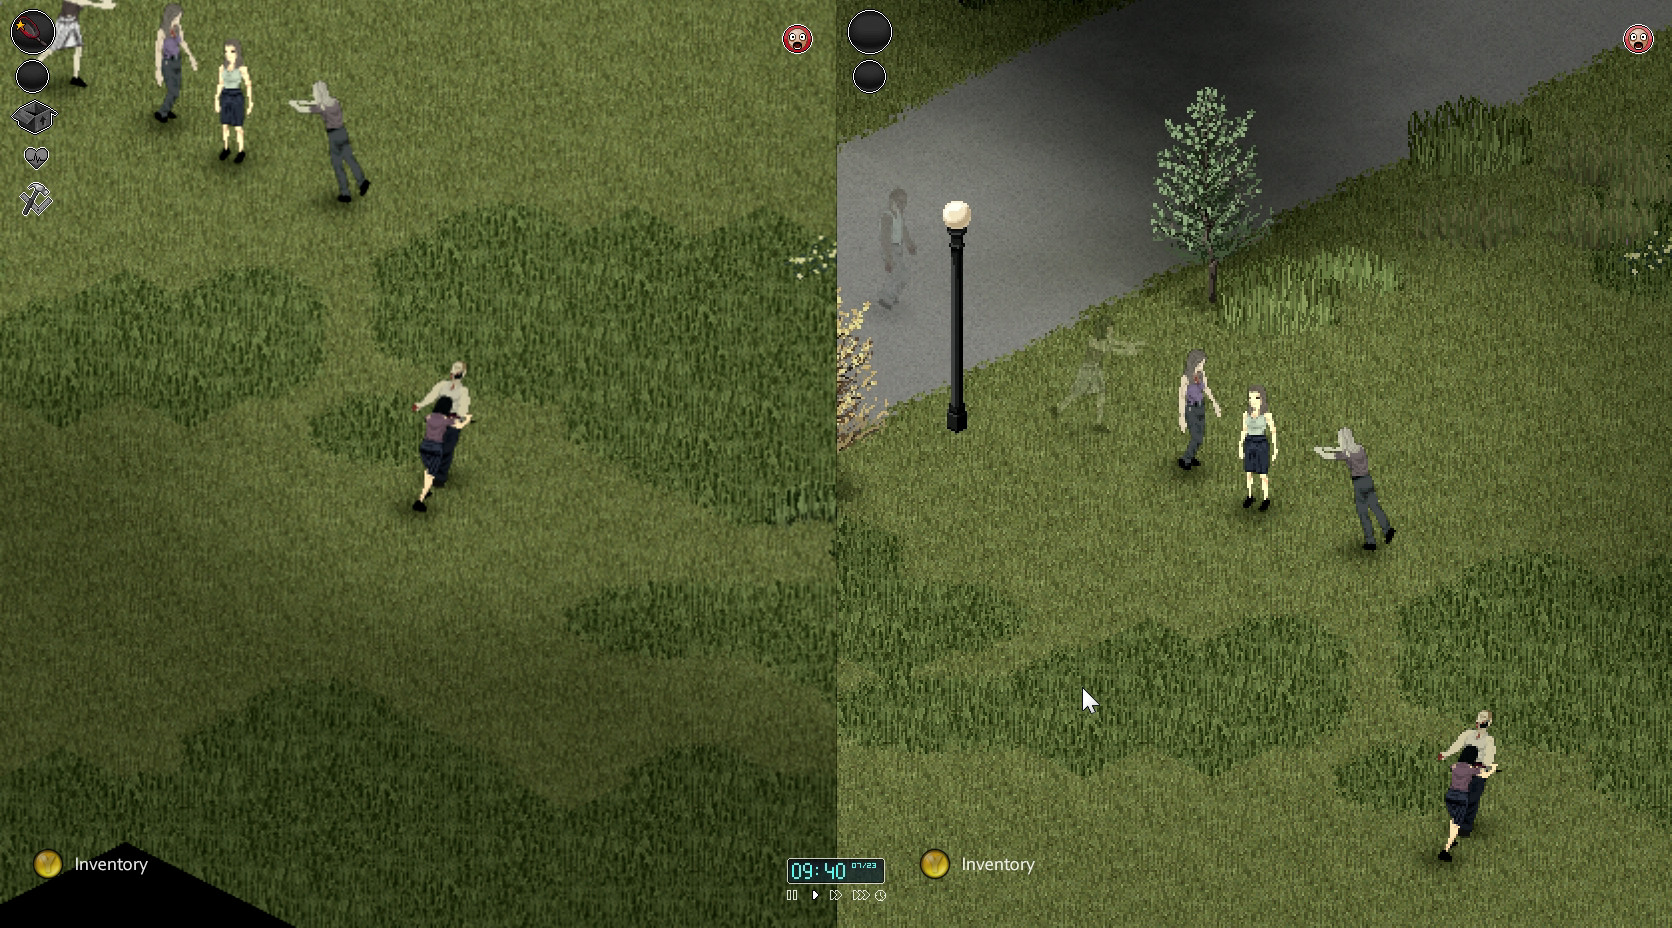 Find the best laptop for Project Zomboid